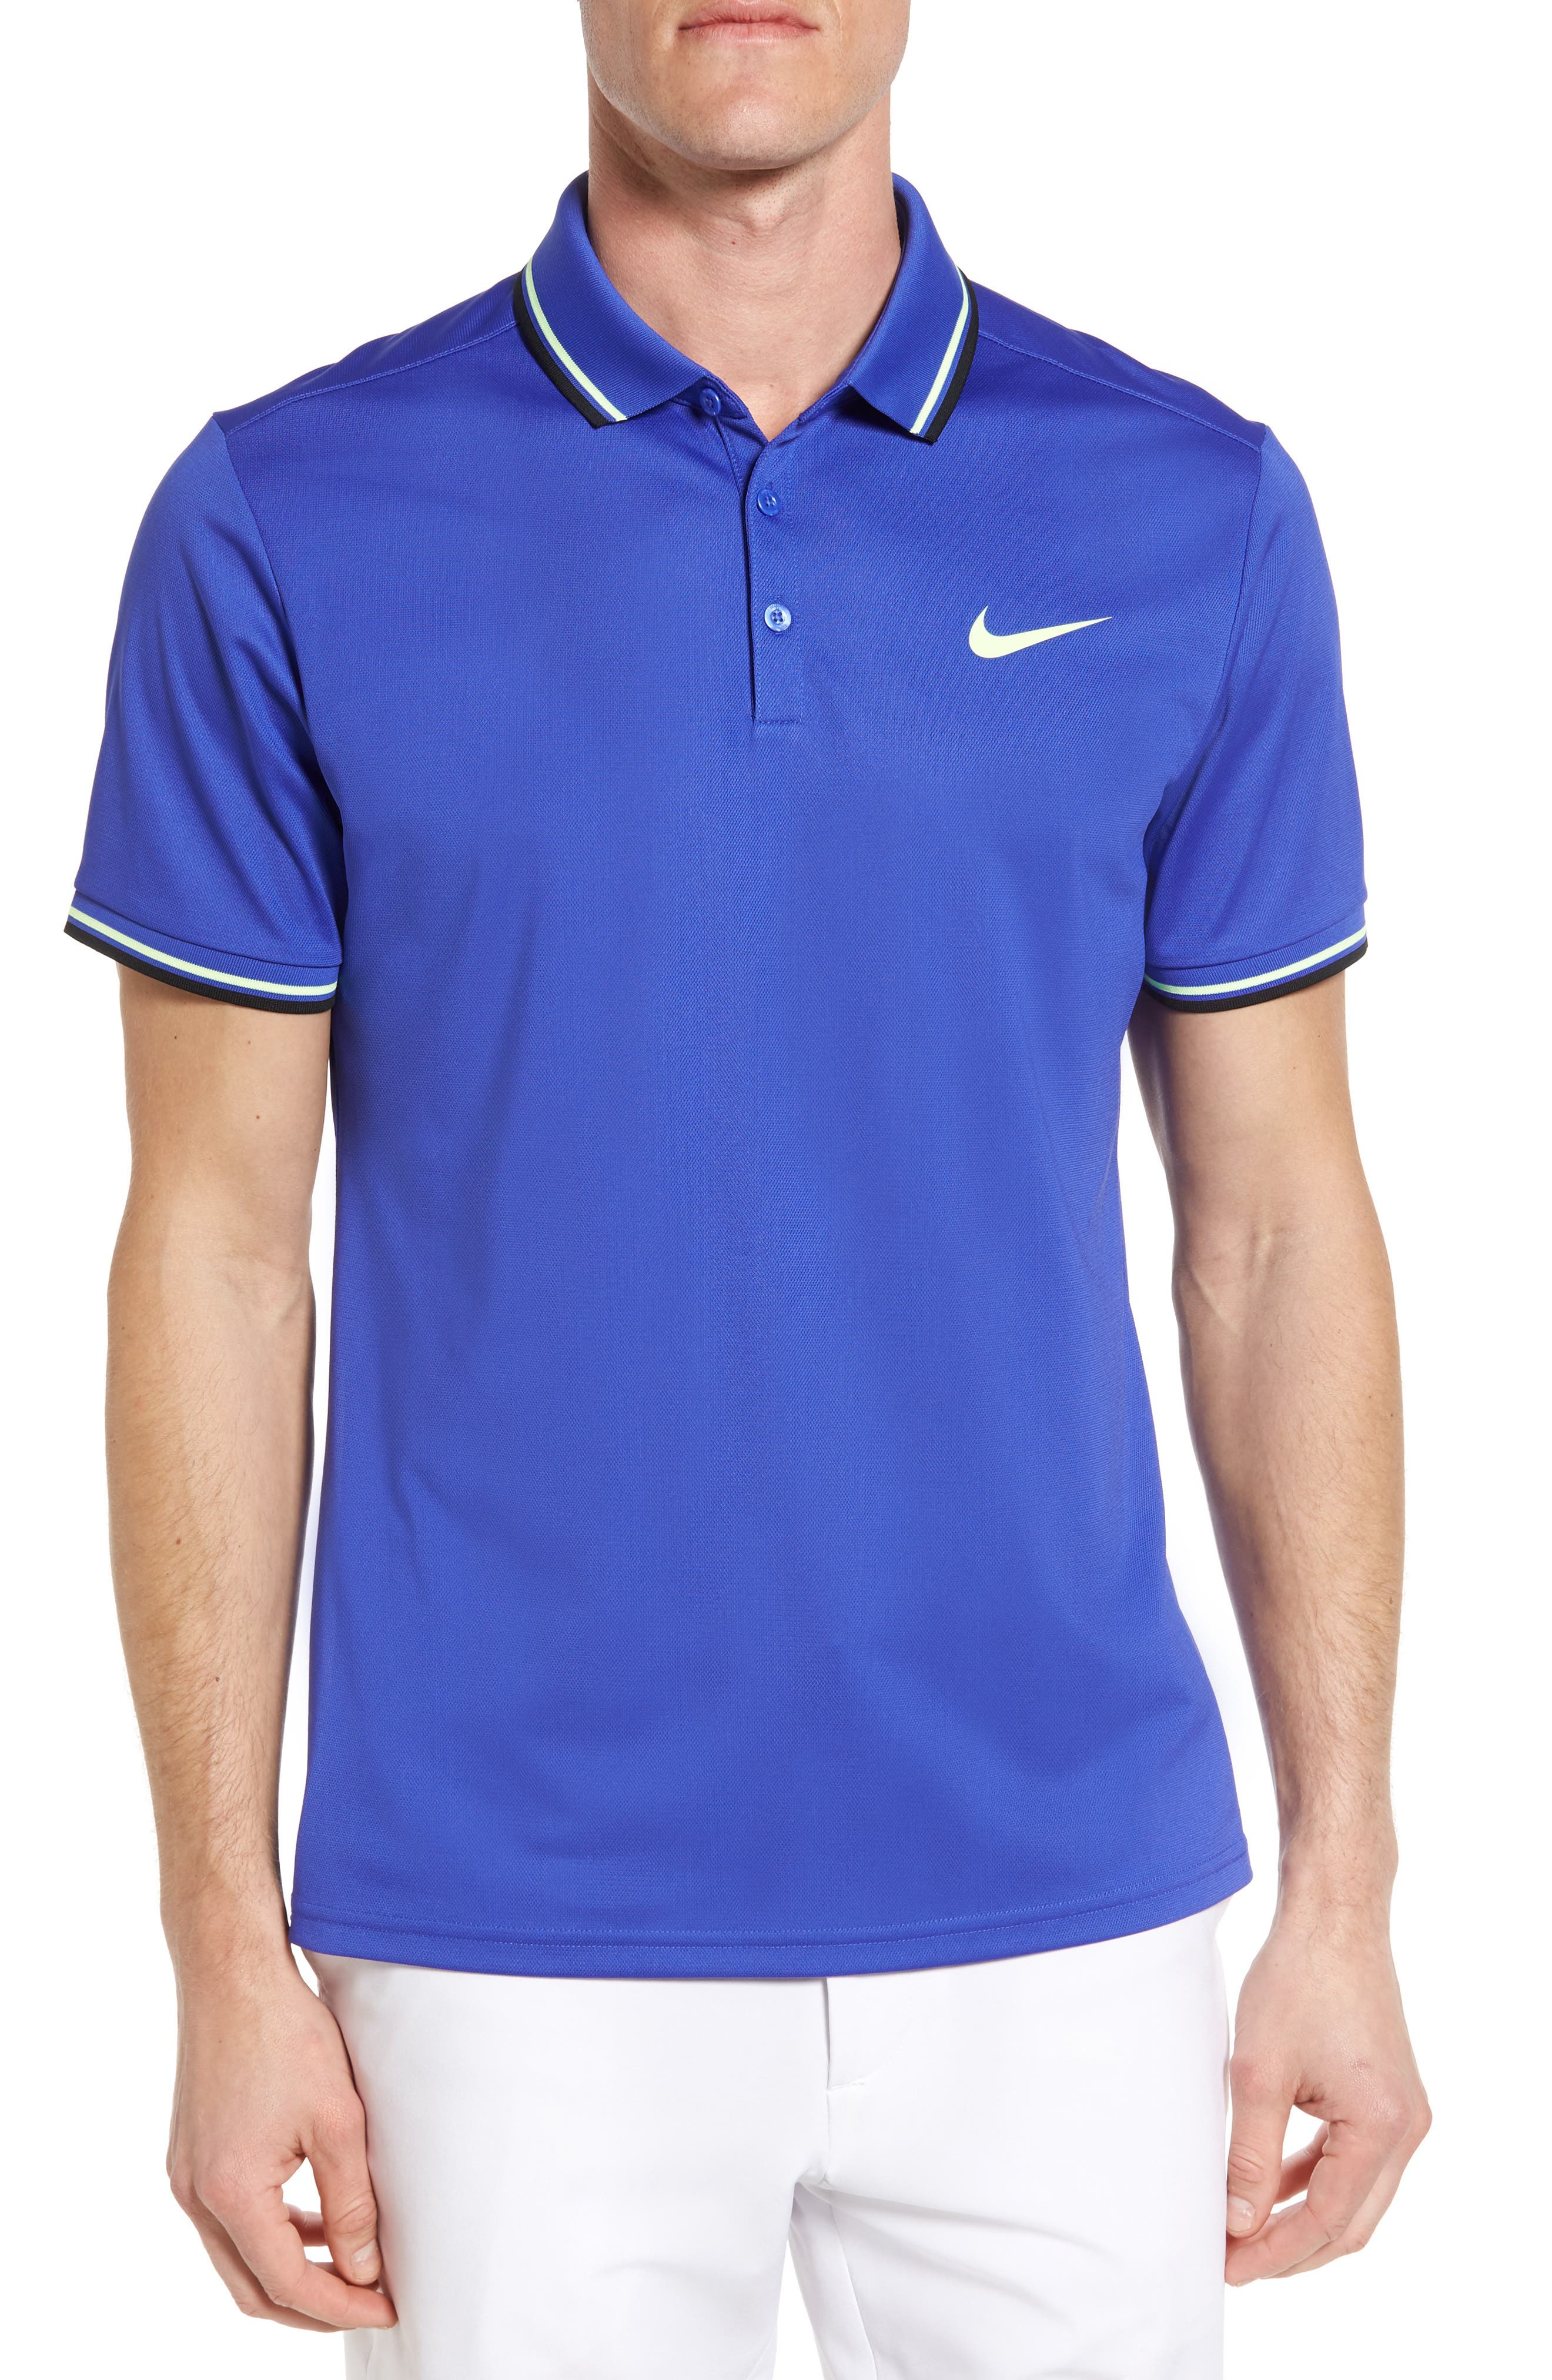 Nike Court Regular Fit Dri-FIT Tennis Polo